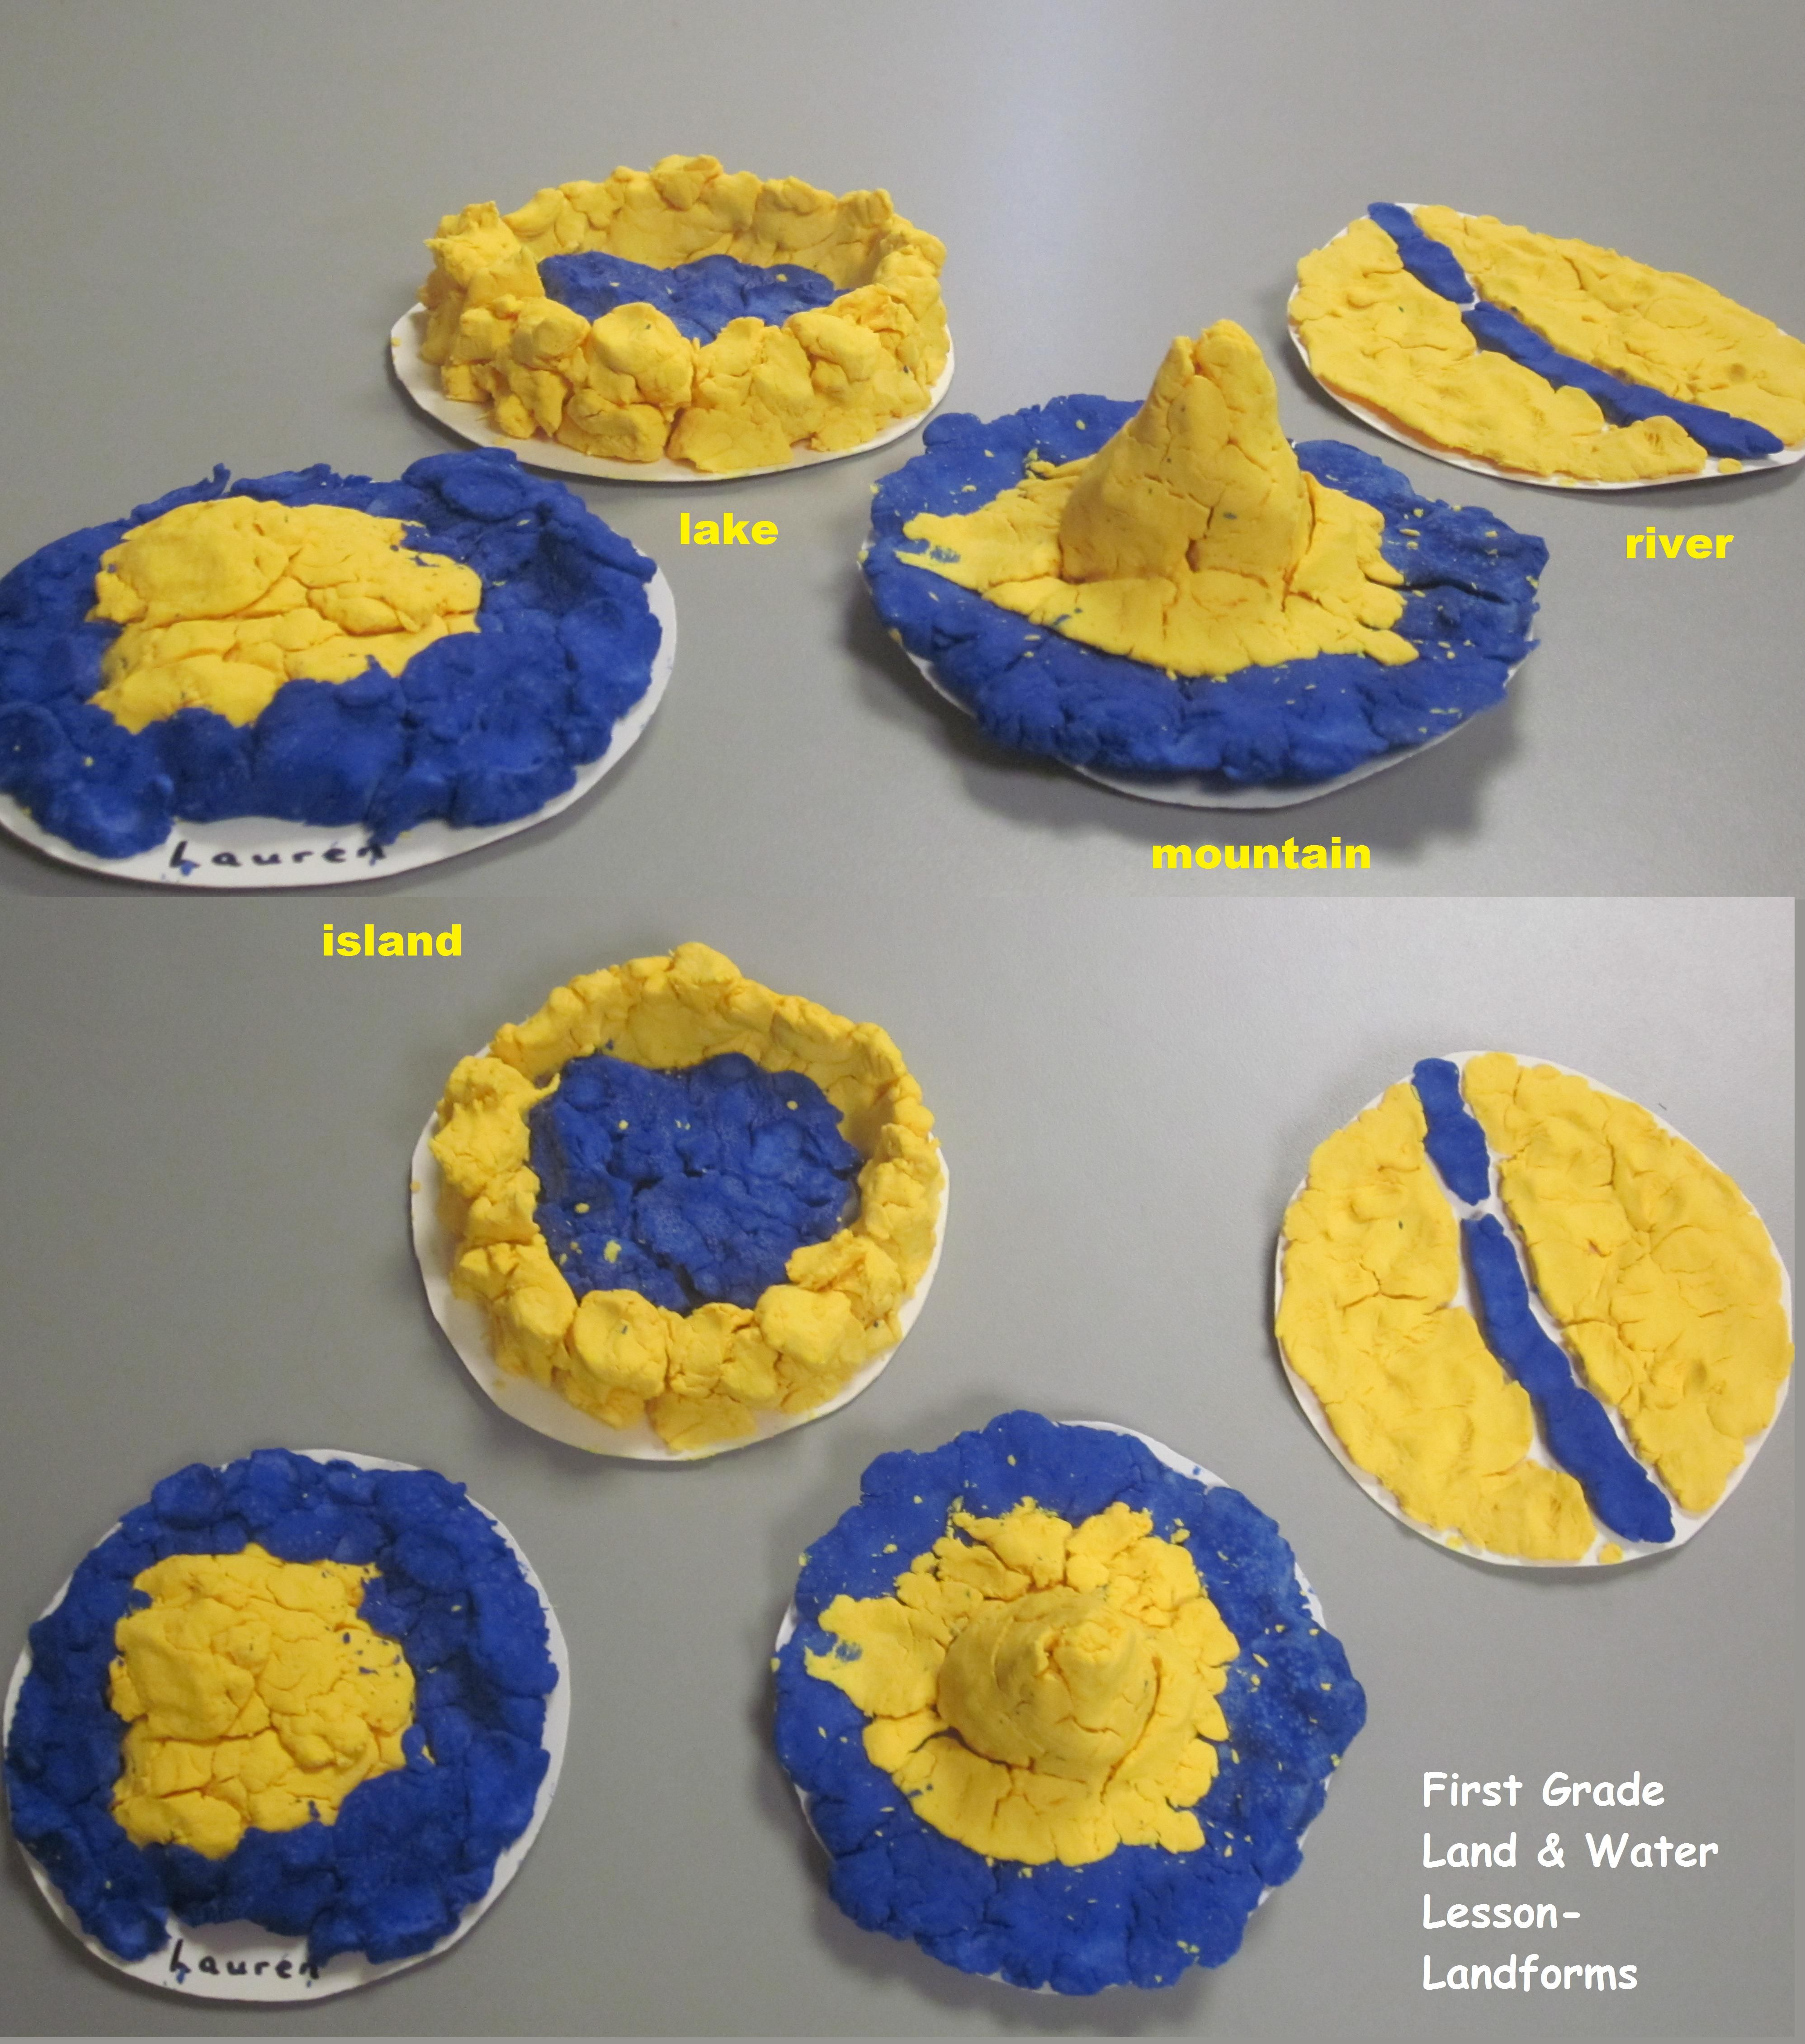 St Grade Land  Water Lesson Clay Landform Activity Students